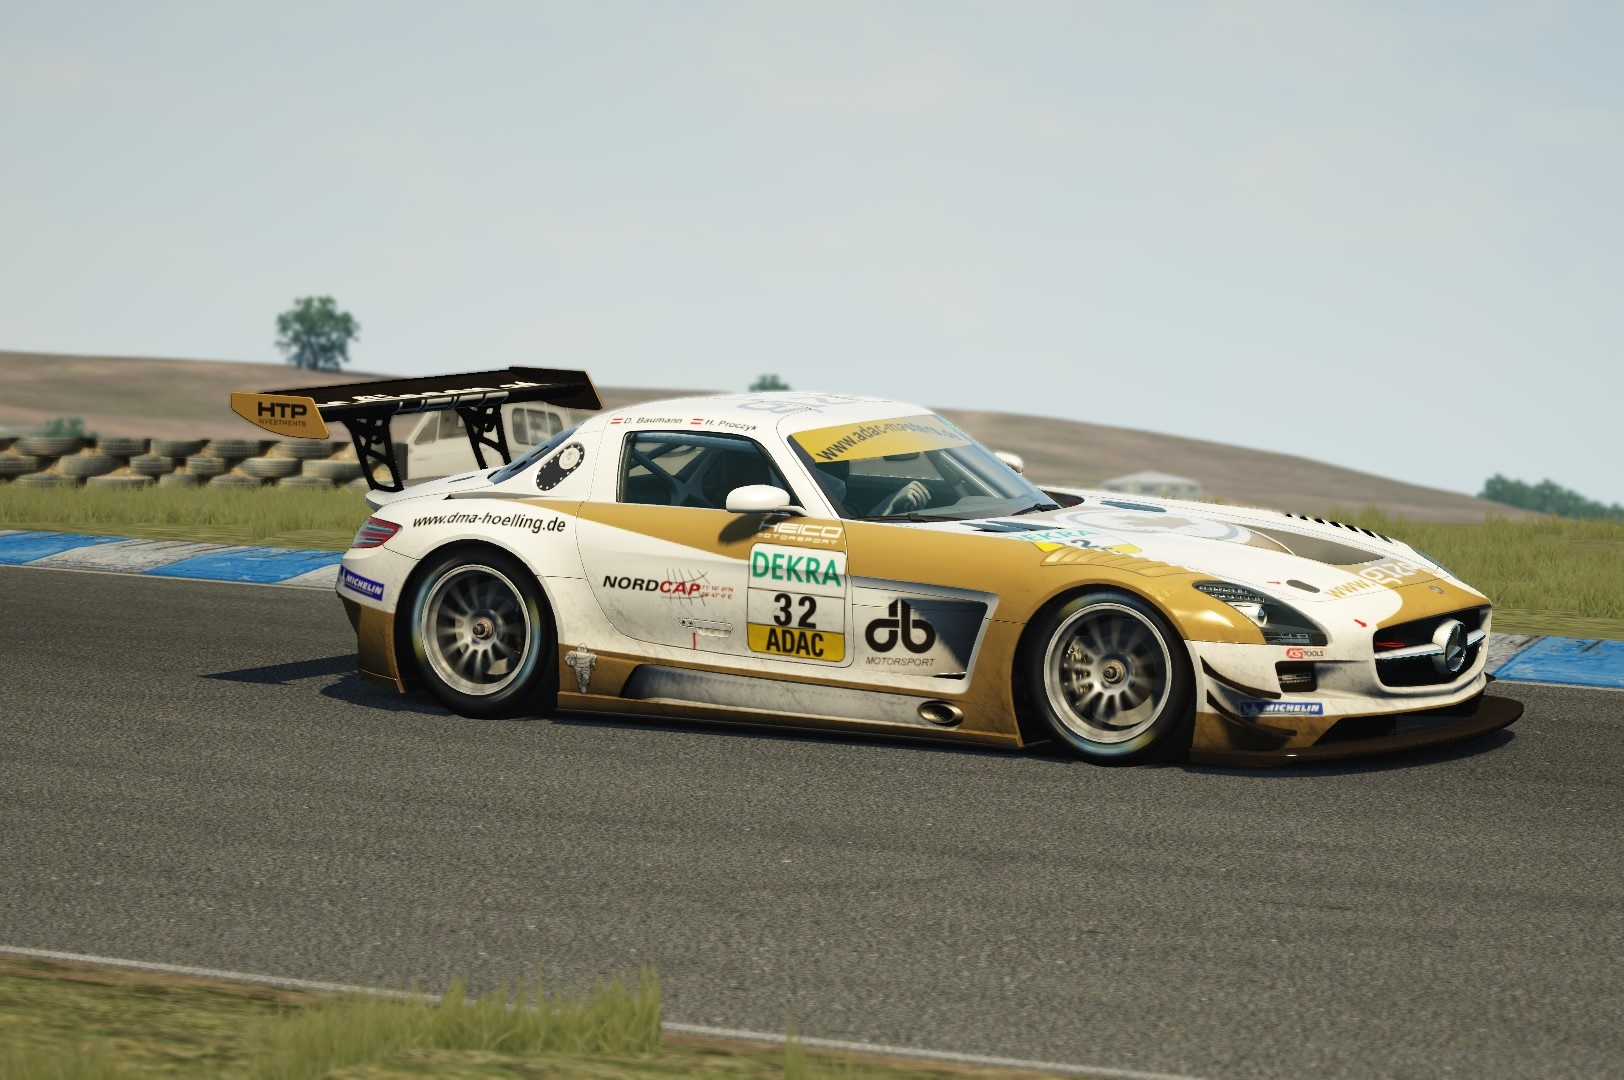 Screenshot_mercedes_sls_gt3_baskerville_beta_08_21-1-116-20-48-42.jpg